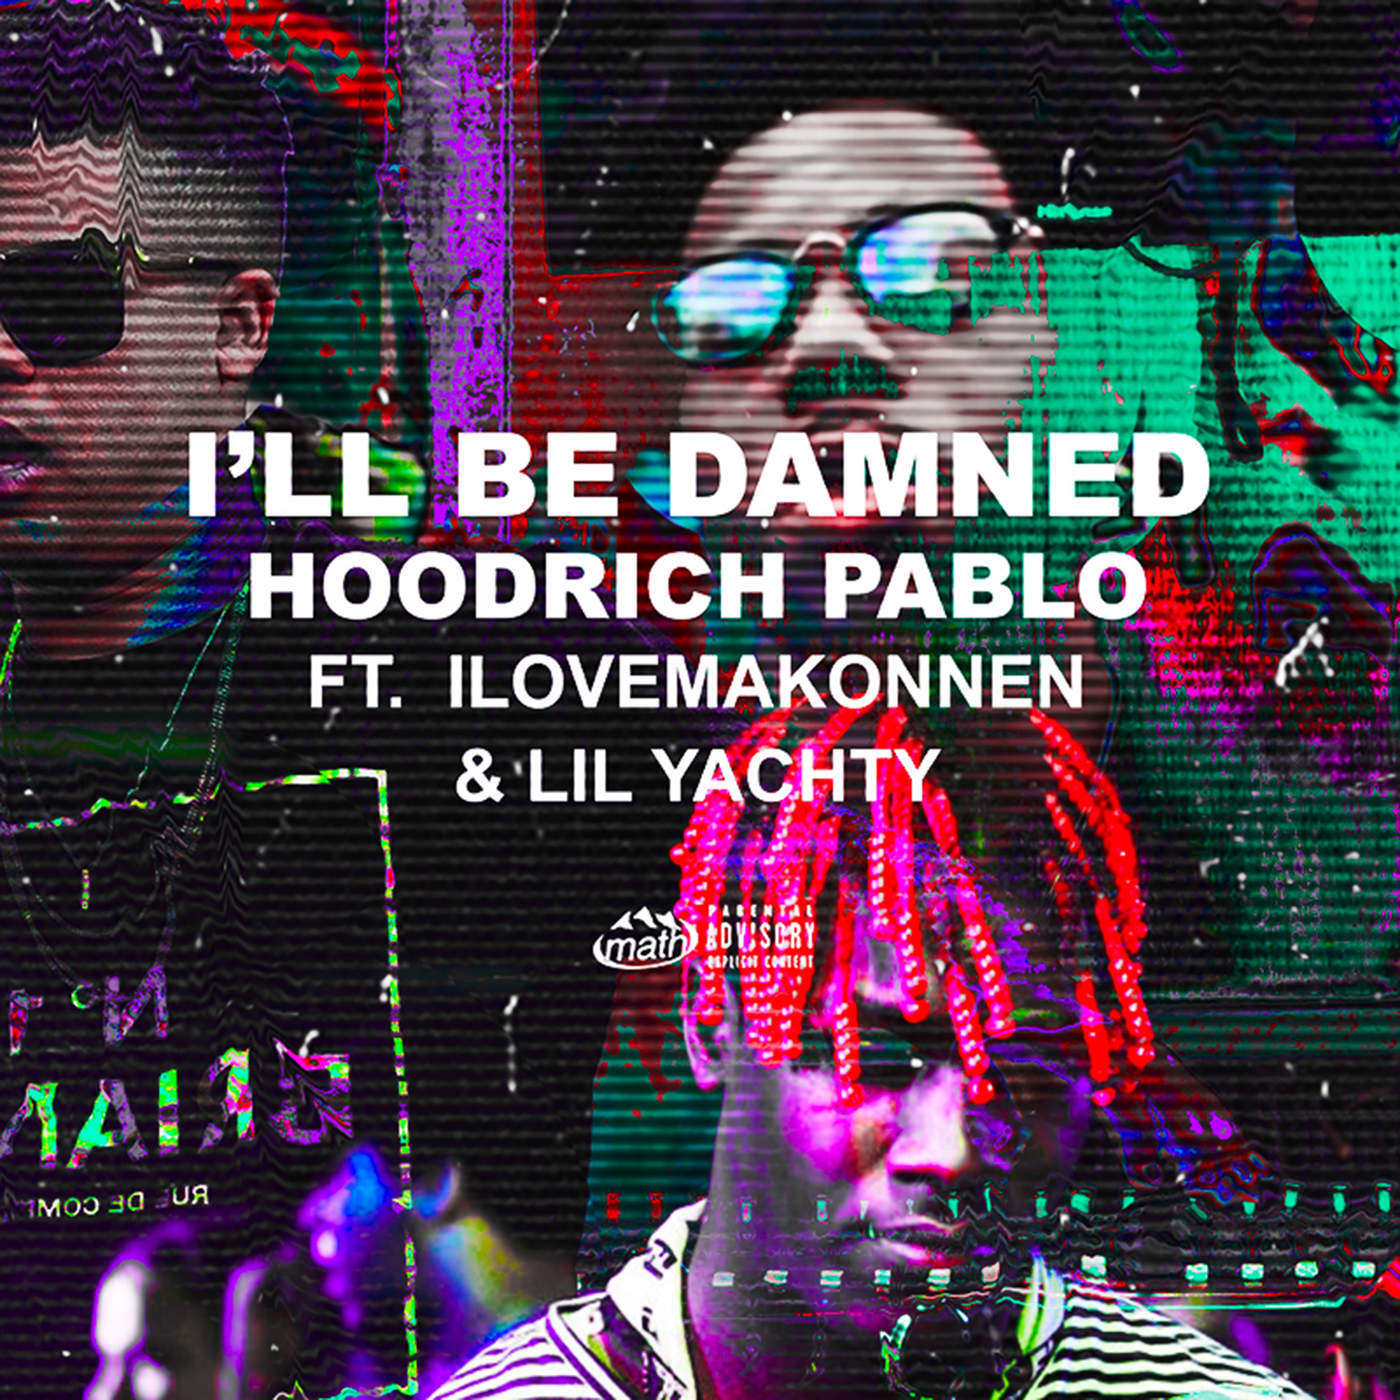 HoodRich Pablo - I'll Be Damned (feat. Lil Yachty & ILoveMakonnen) - Single Cover